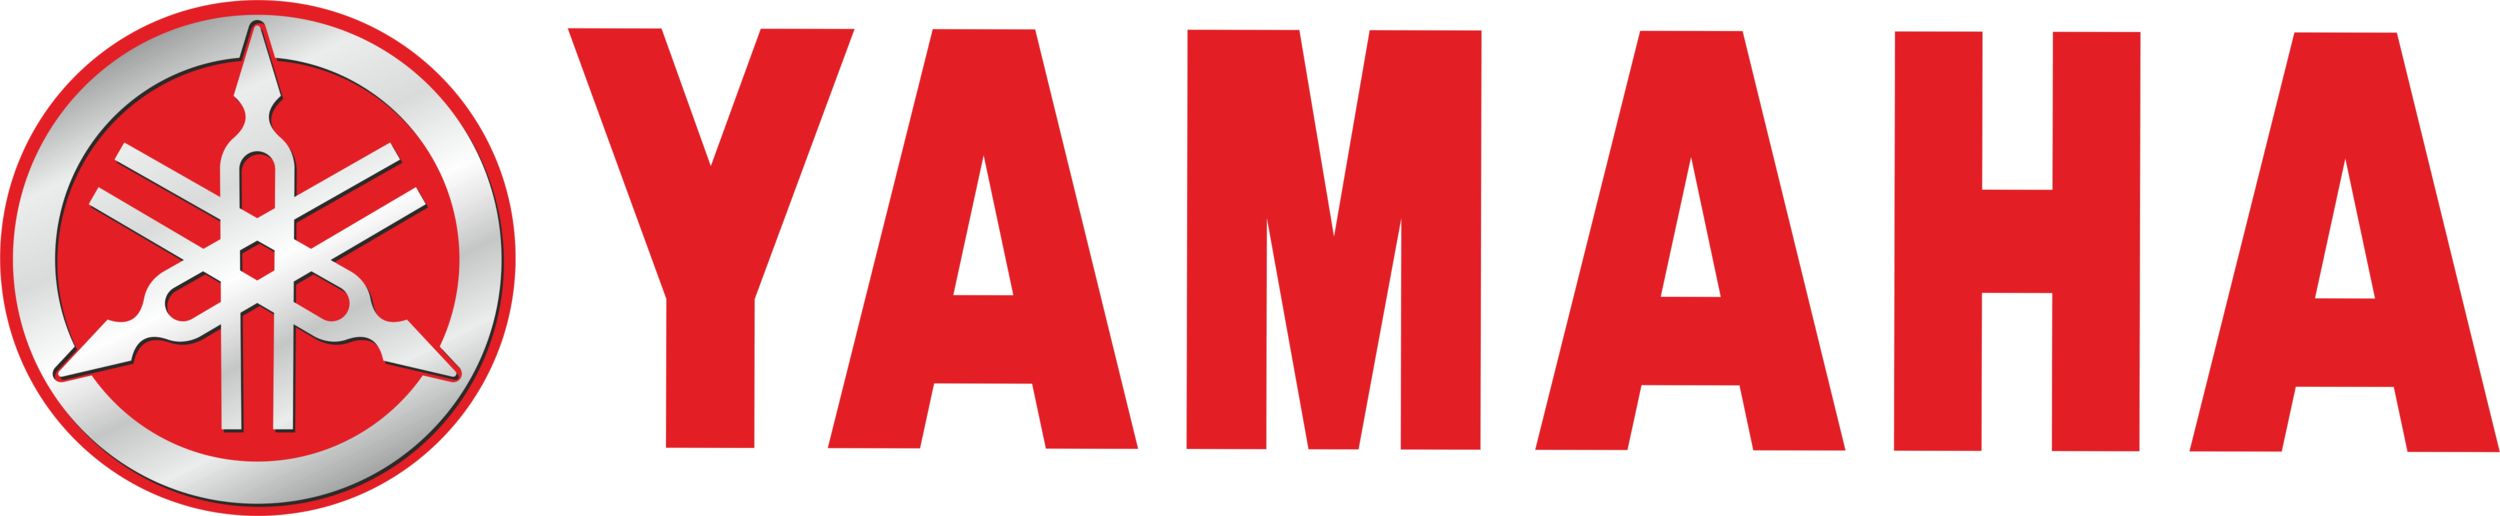 Yamaha_logo_new_red_and_white_colors.png